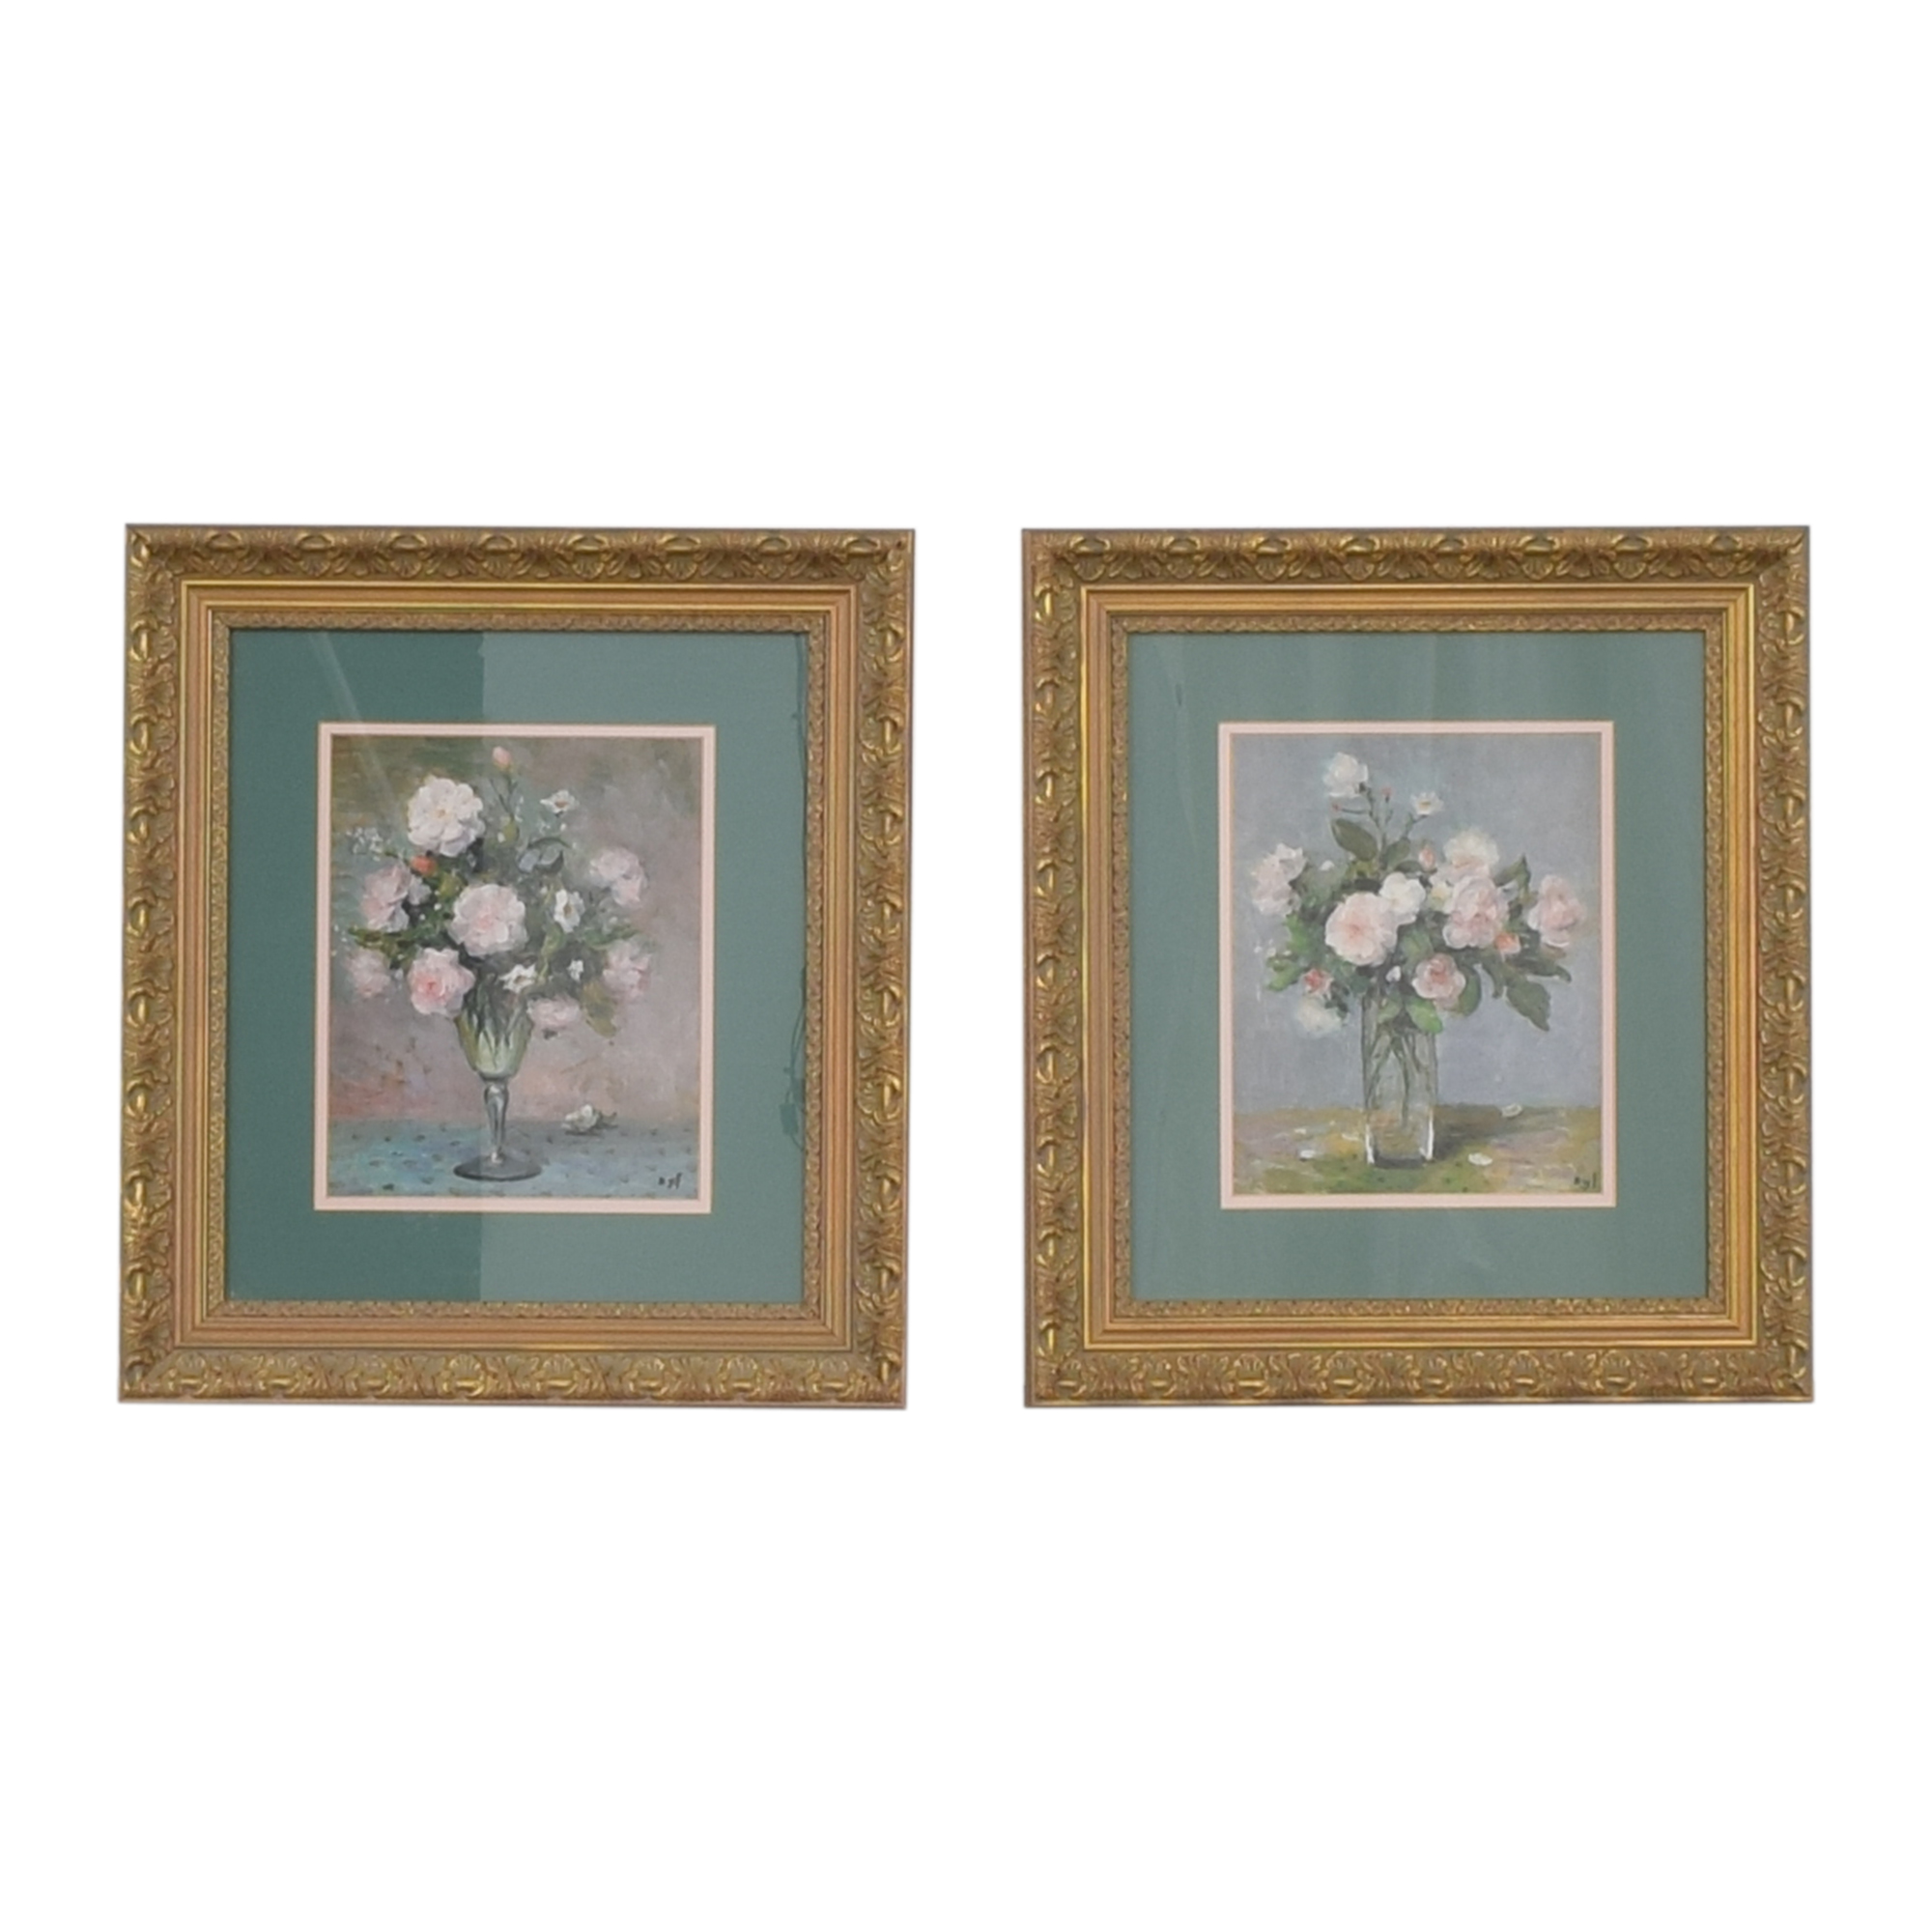 shop Framed Floral Wall Art  Decor